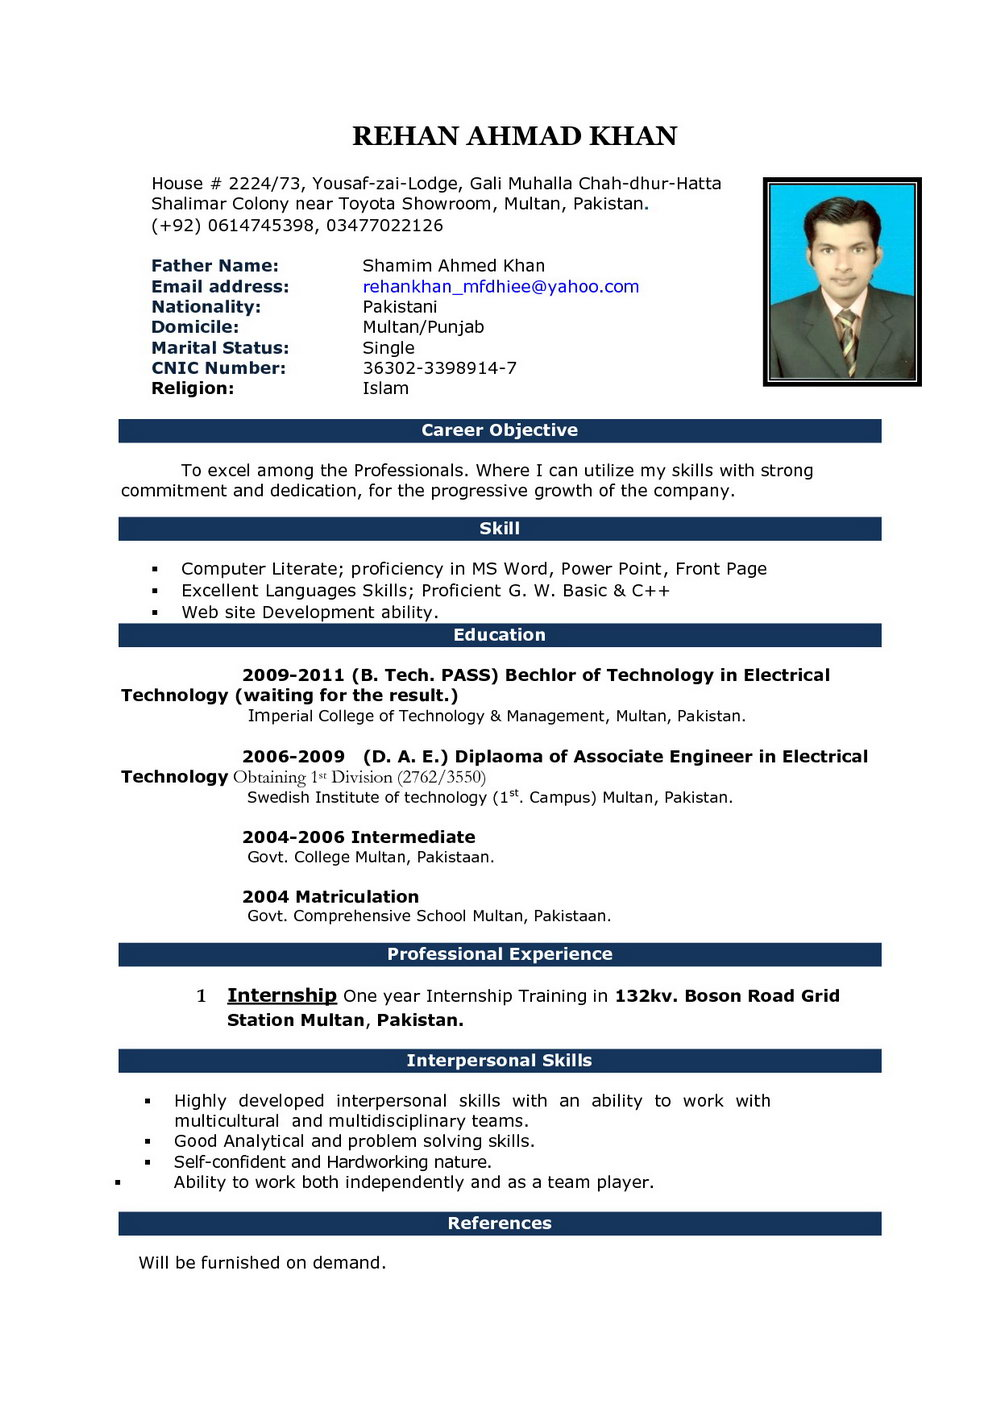 Resume Templates Microsoft Word 2011 Mac